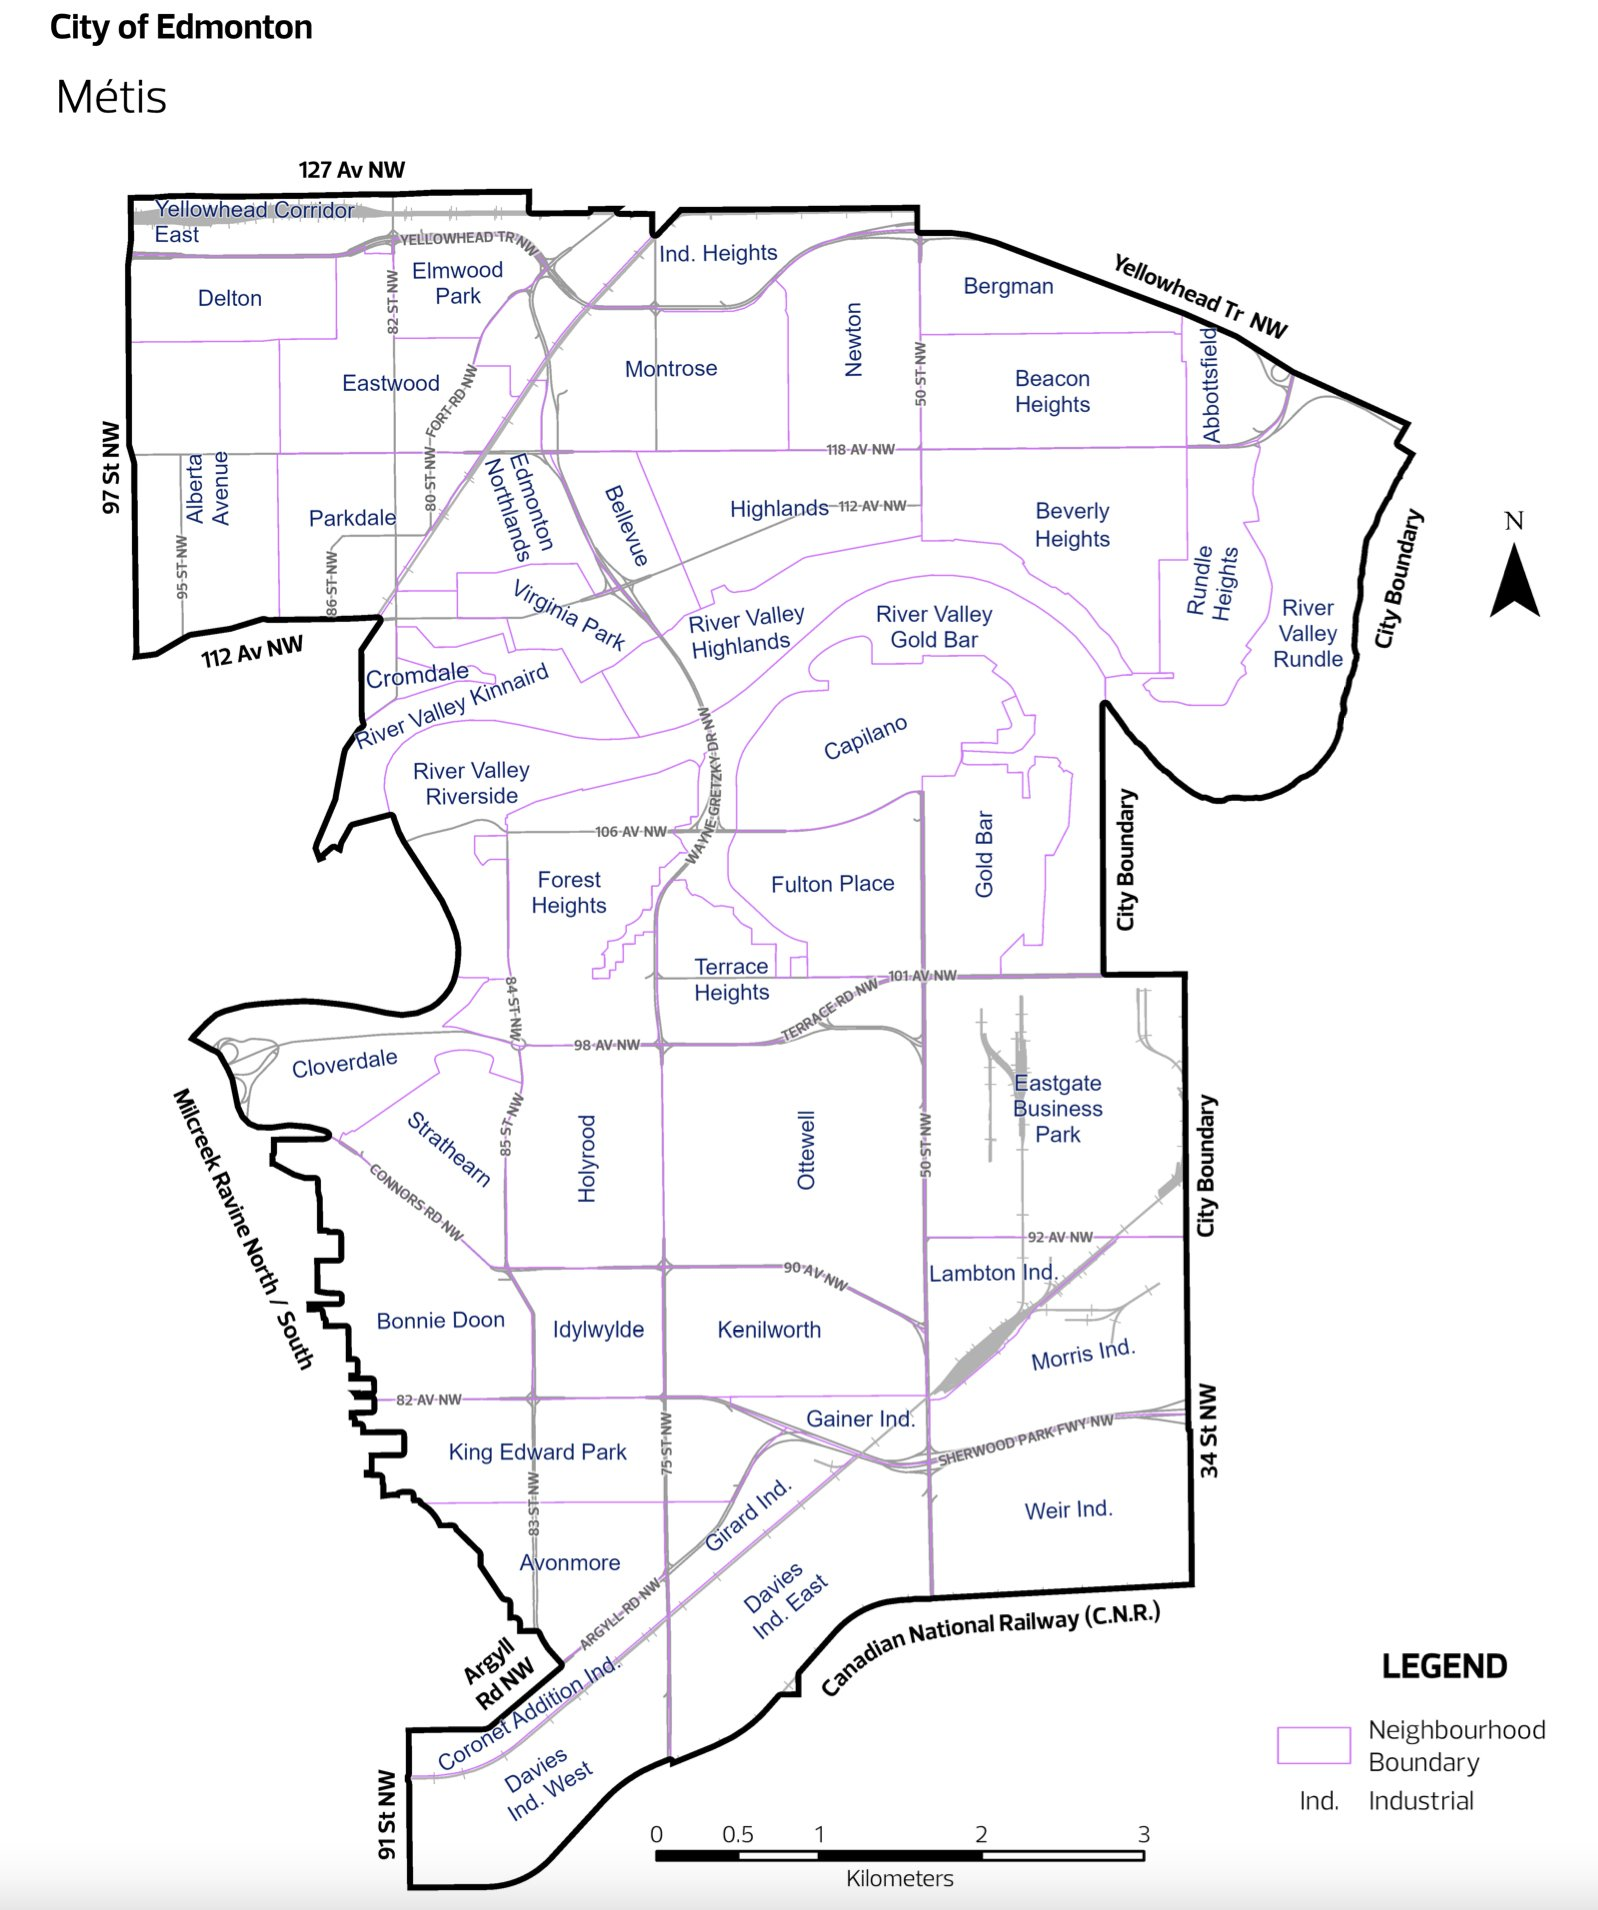 Image of Ward Metis Edmonton map with all neighbourhoods available to click on